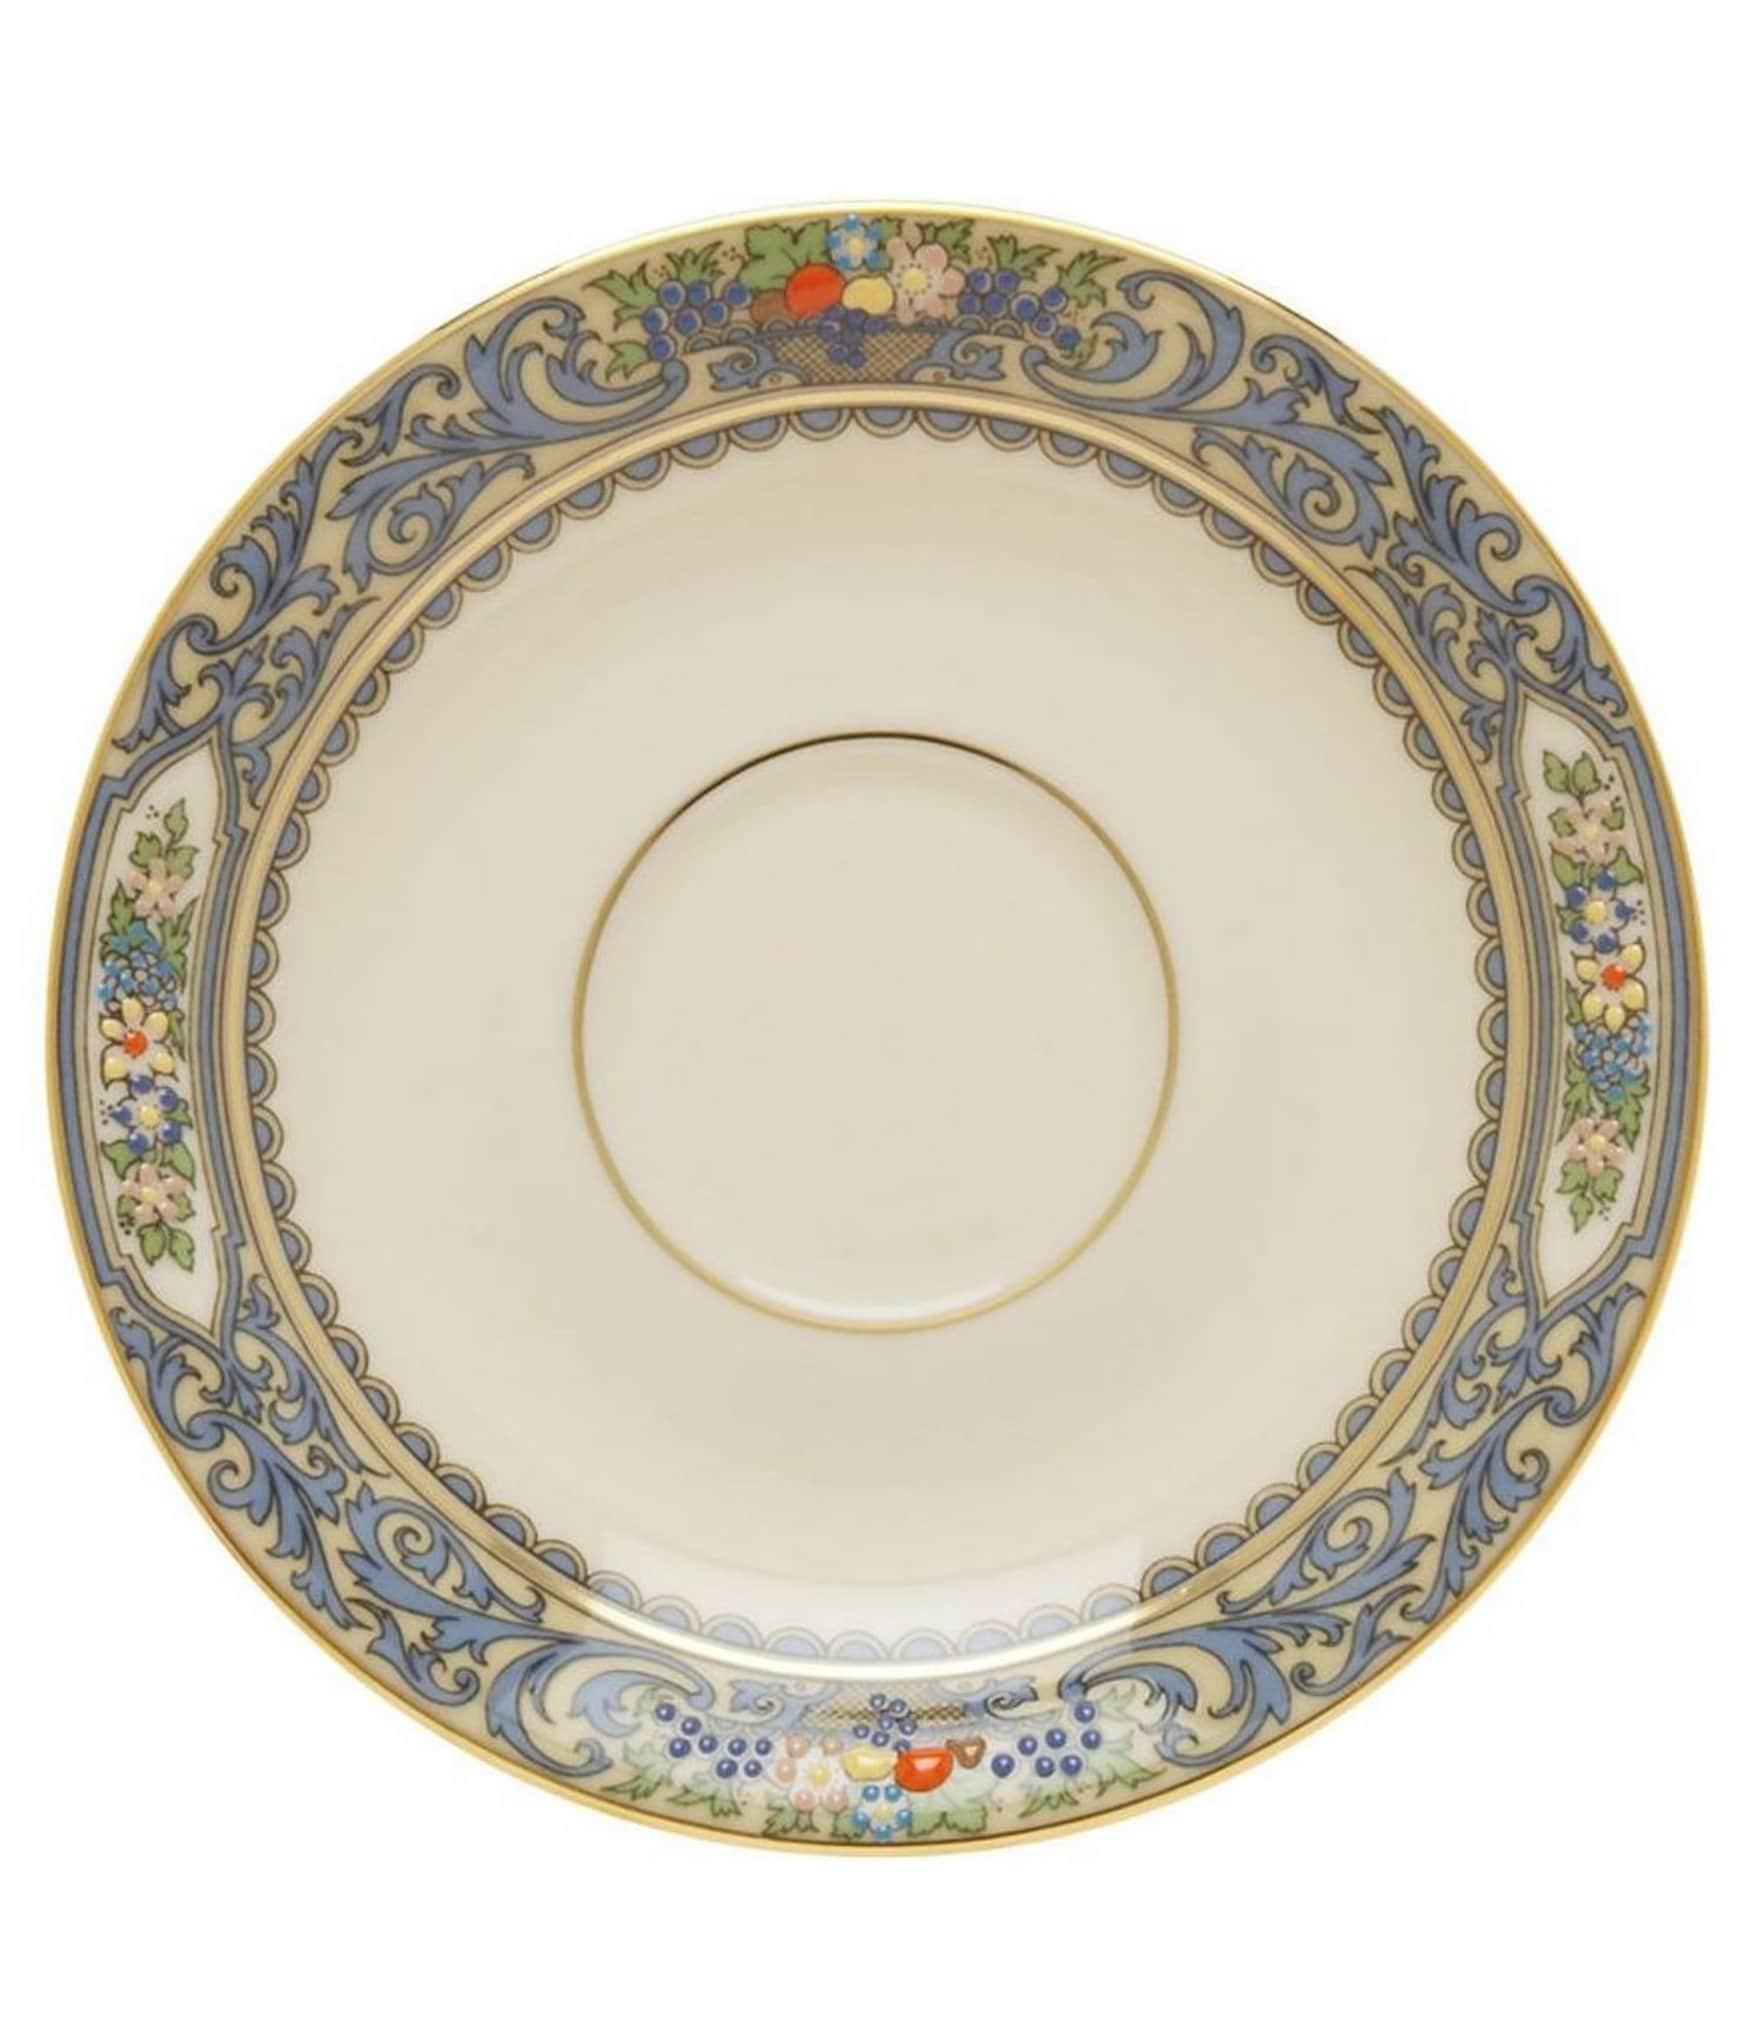 sc 1 st  Dillardu0027s & Formal u0026 Fine China | Dillards